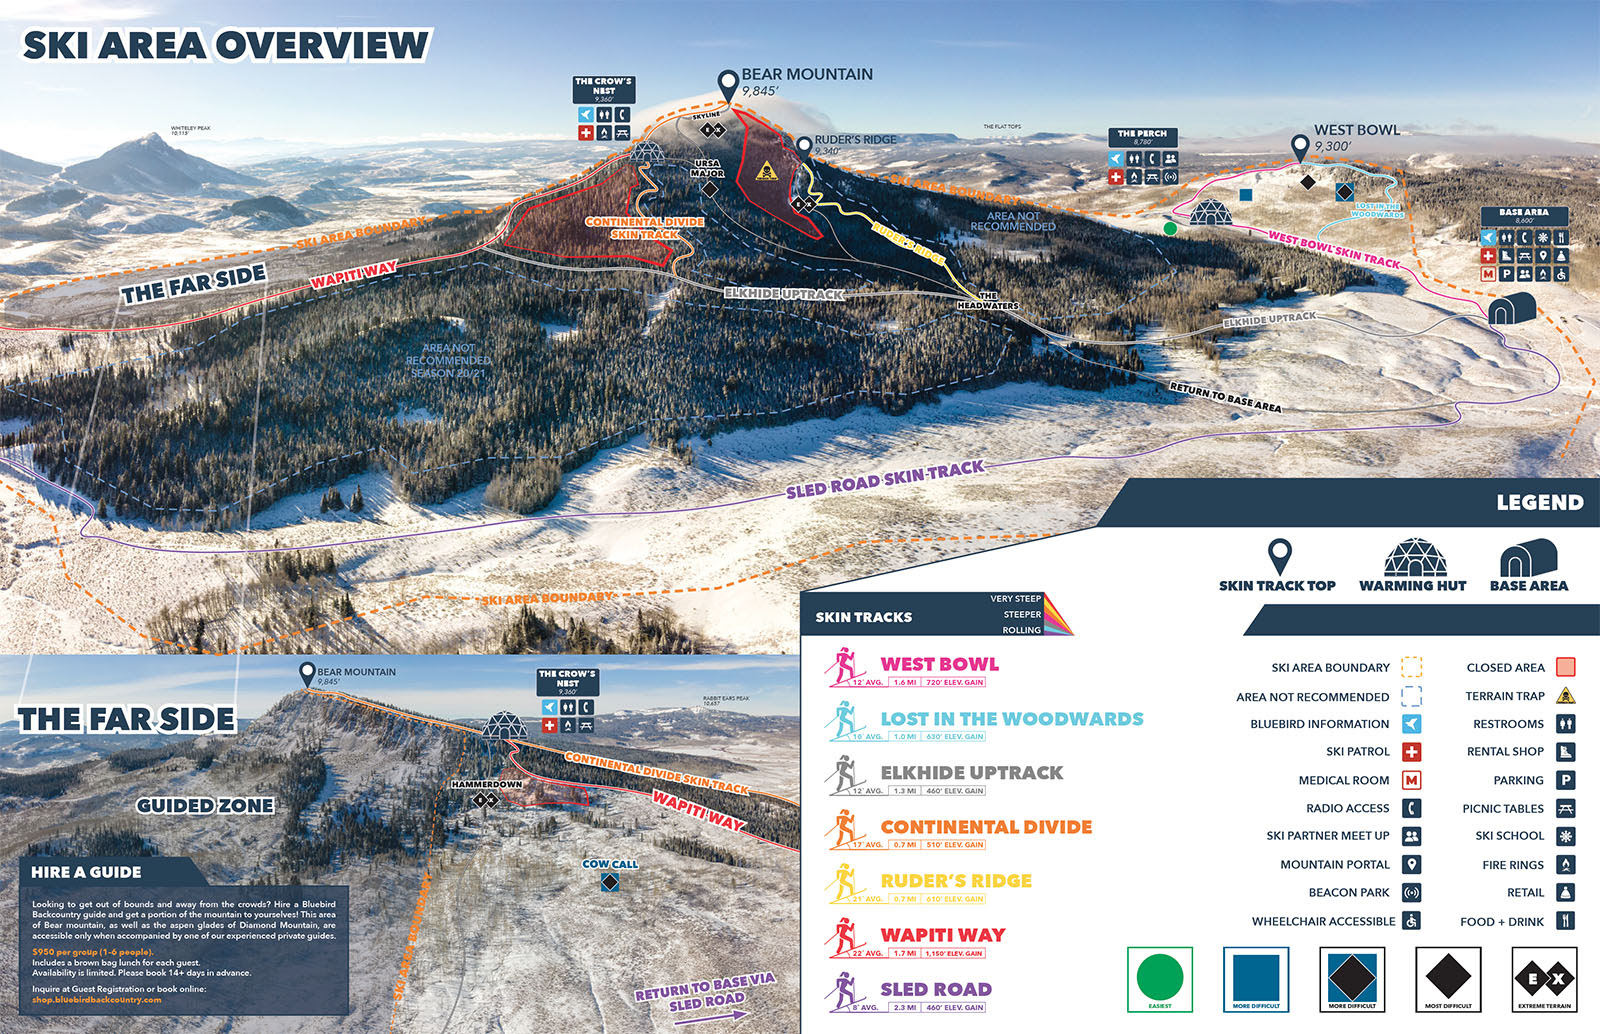 a image of bear mountain with Bluebird's map legend showing the different bowls and terrain